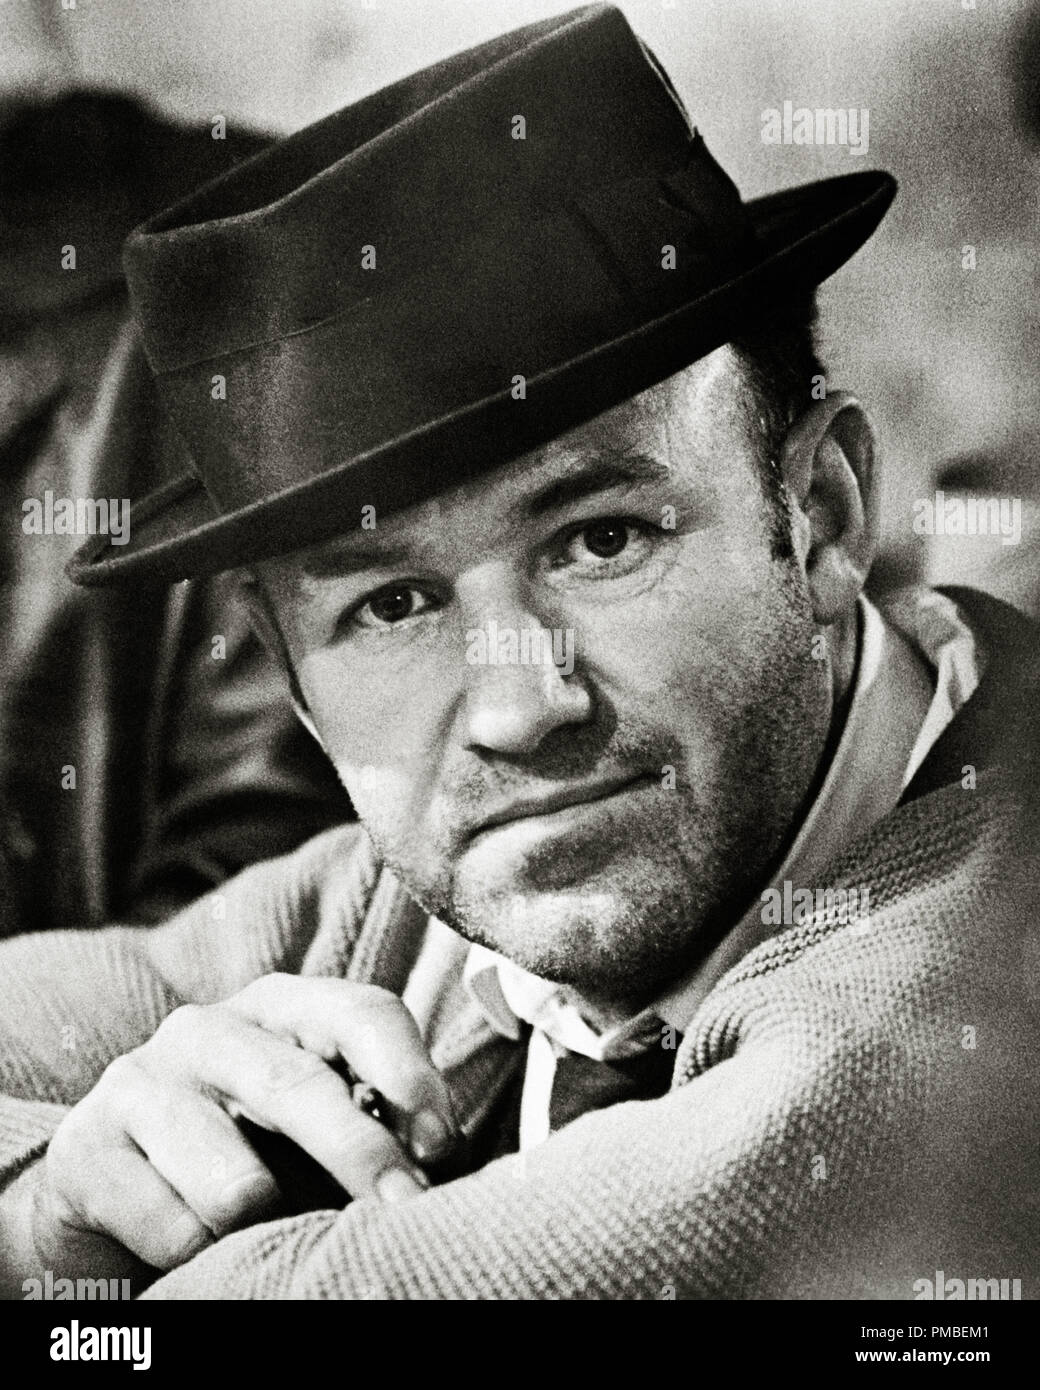 Gene Hackman, 'The French Connection' 1971 20th Century Fox  File Reference # 33371_795THA - Stock Image